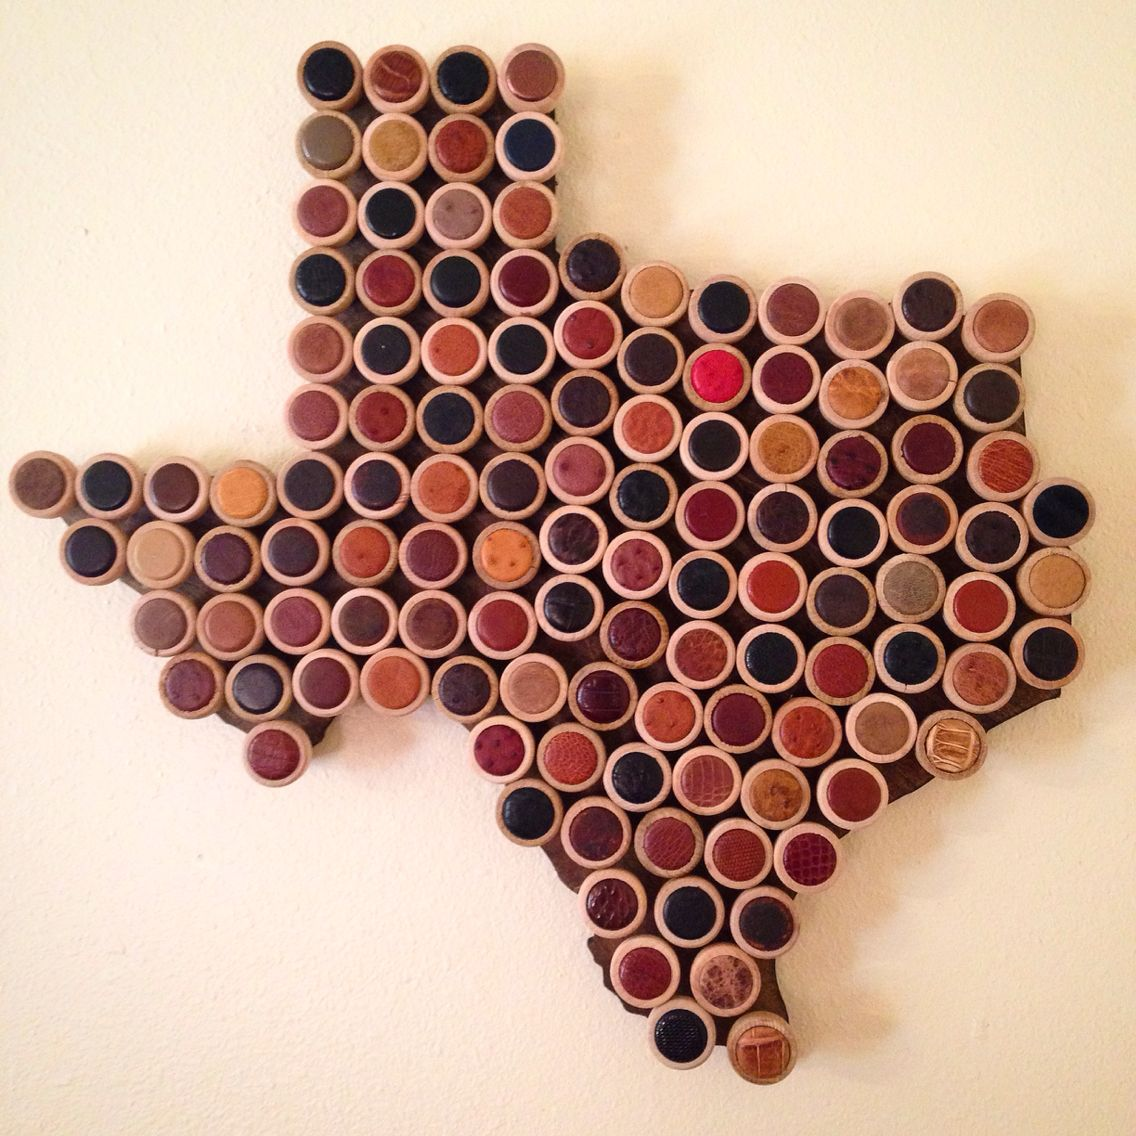 Tx Whiskey By Firestone Robertson Boot Tops Collected By Whiskeyta Club In Wichita Falls Tx Whiskey Bottle Crafts Mommy Crafts Craft Gifts